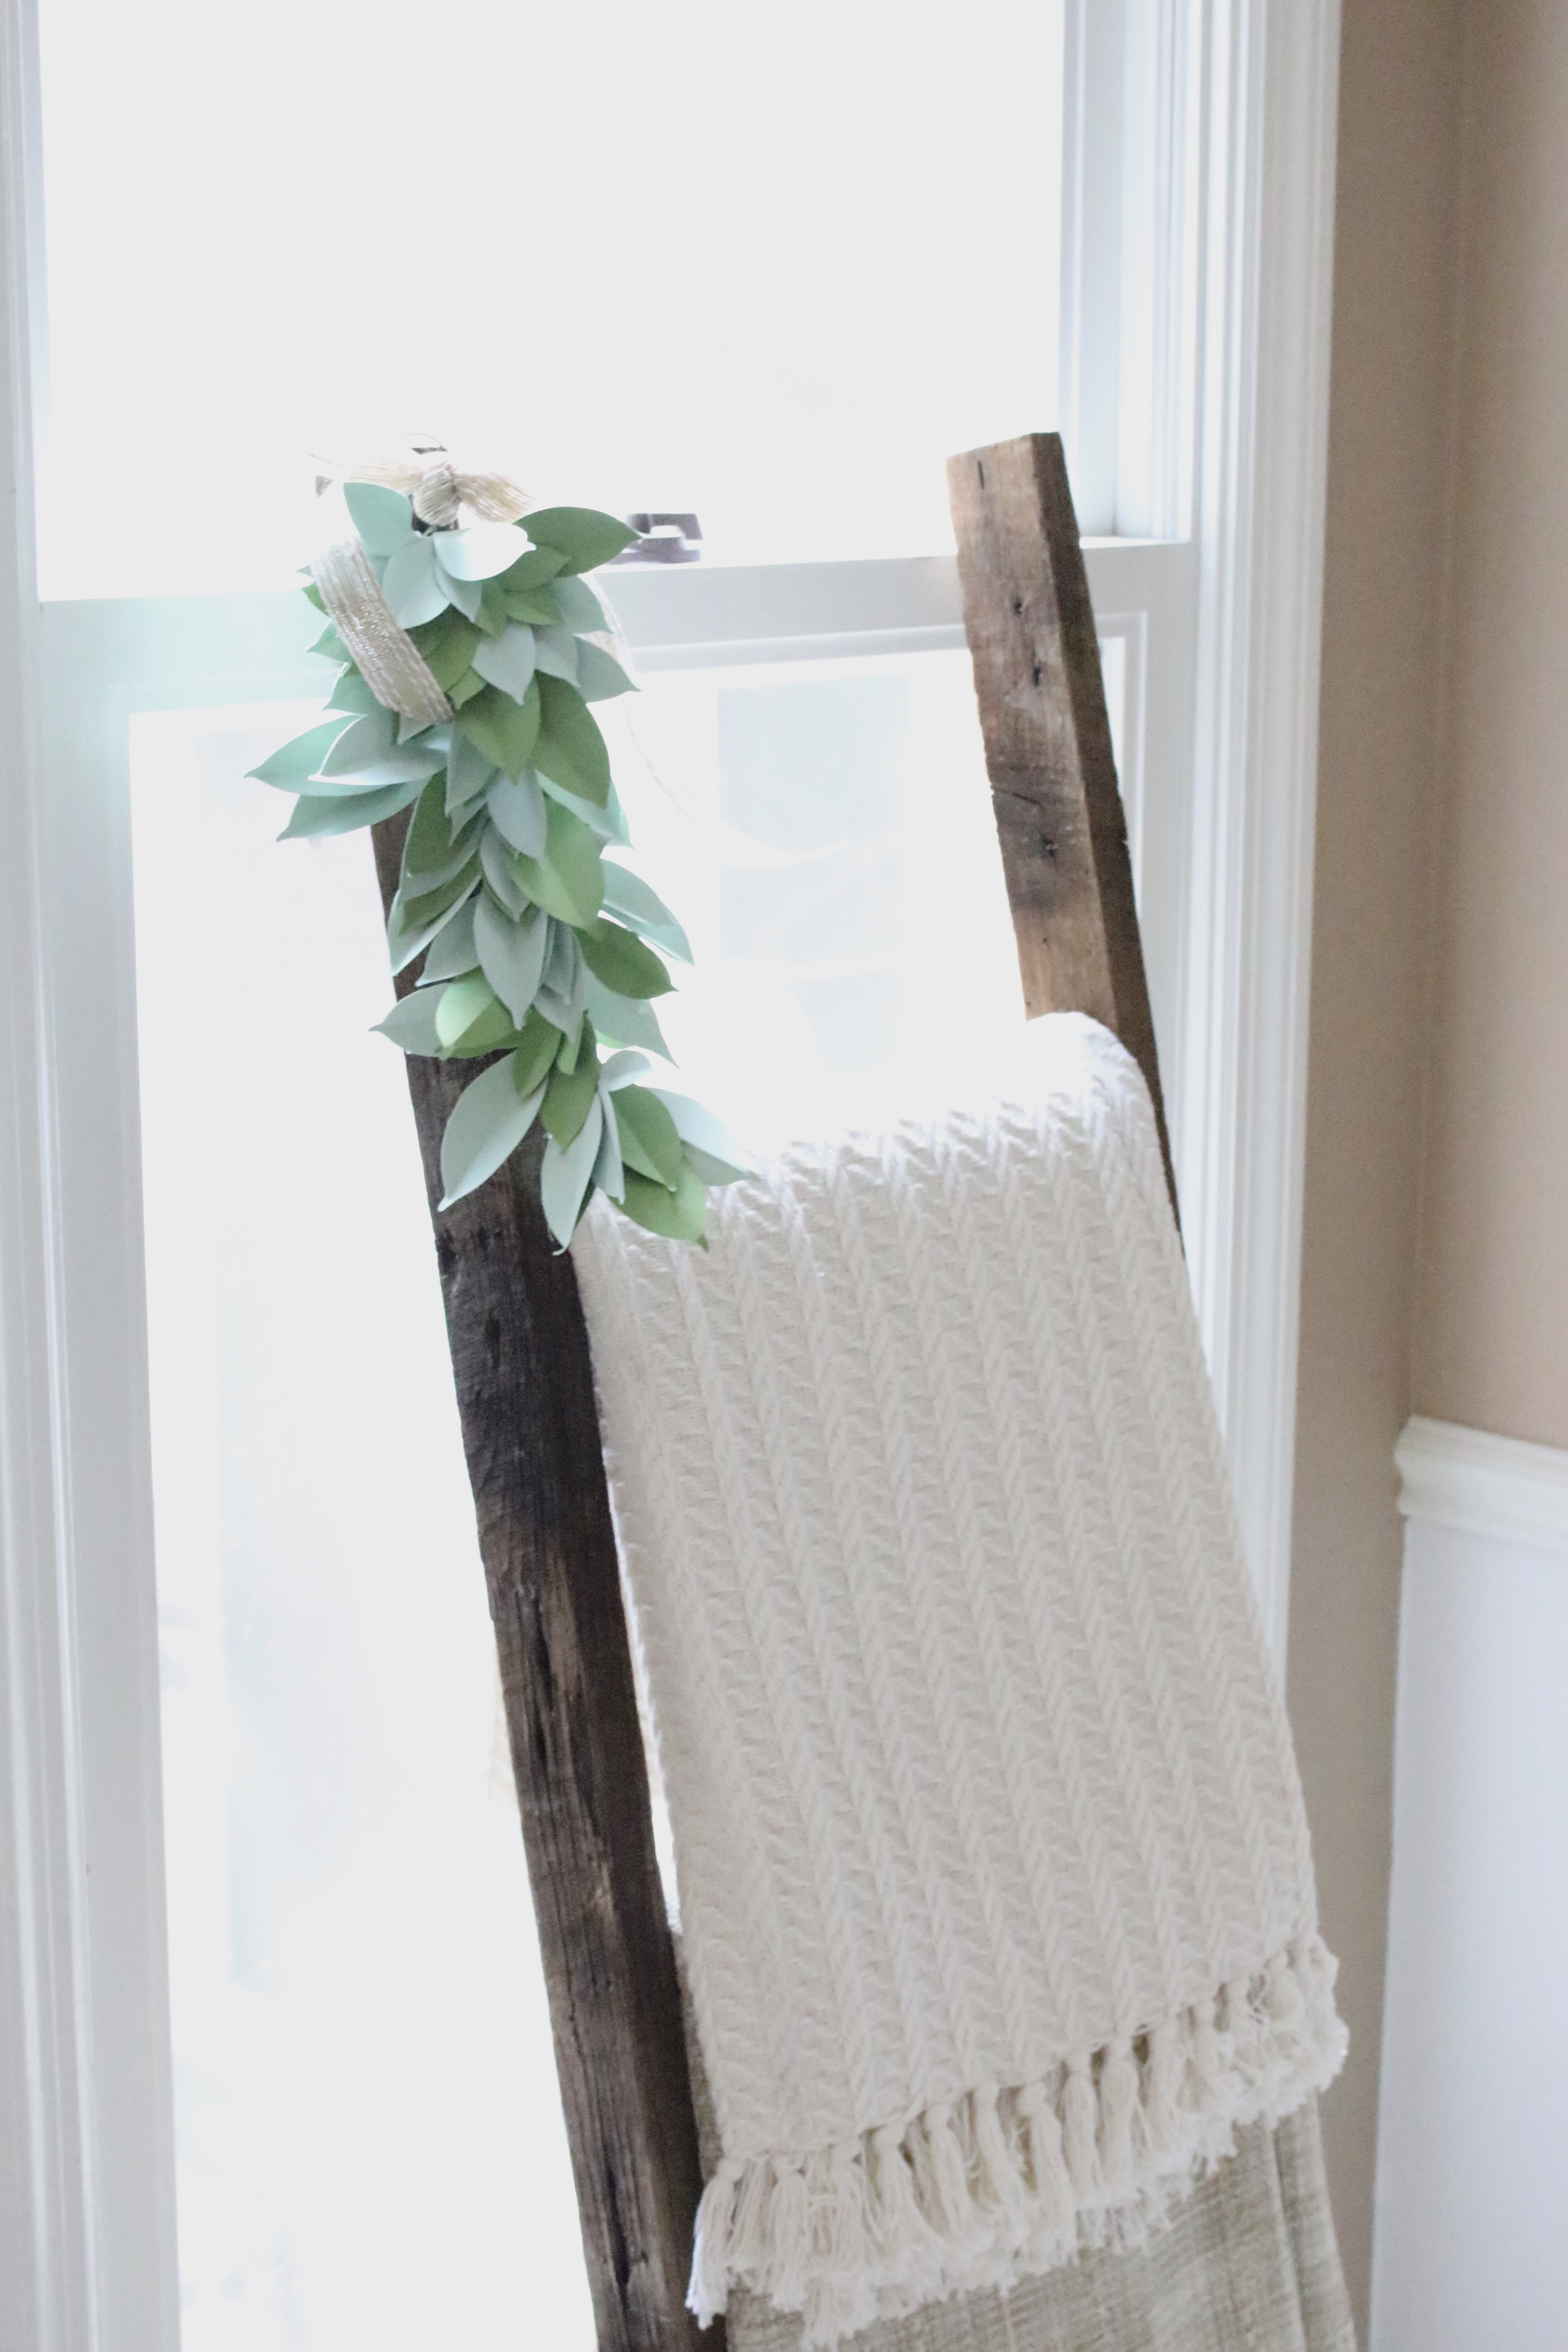 Farmhouse Paper Swag- Cricut Explore Air- paper crafts- DIY- die cut- paper leaves- swag- garland- leaves- farmhouse style- farmhouse- blanket- rustic ladder